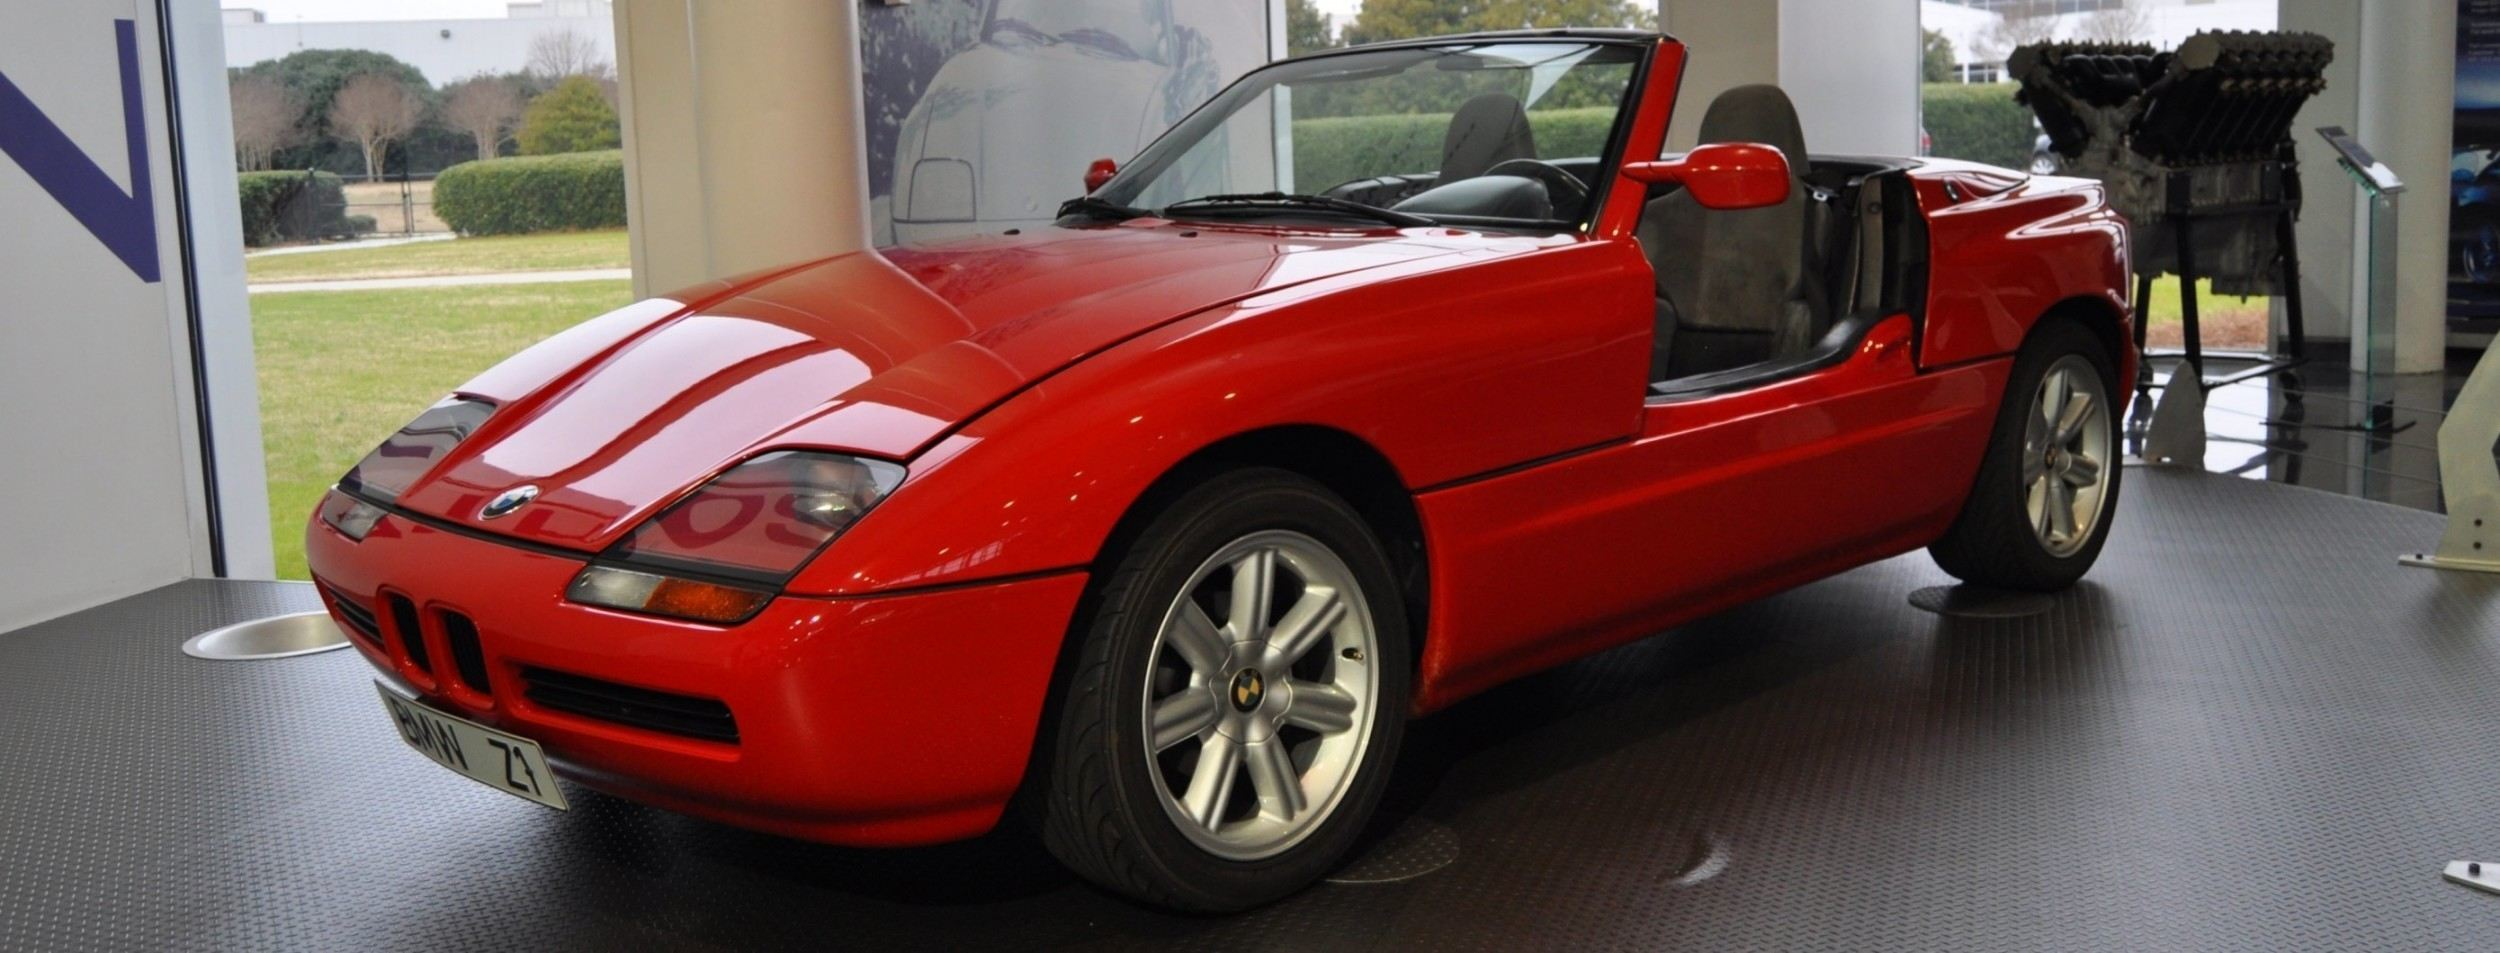 Car-Museums-Showcase-1989-BMW-Z1-at-Zentrum-in-Spartanburg-SC-High-Demand-+-High-Price-Led-Directly-to-US-Built-Z3-7 Stunning Bmw Z1 Hardtop for Sale Cars Trend